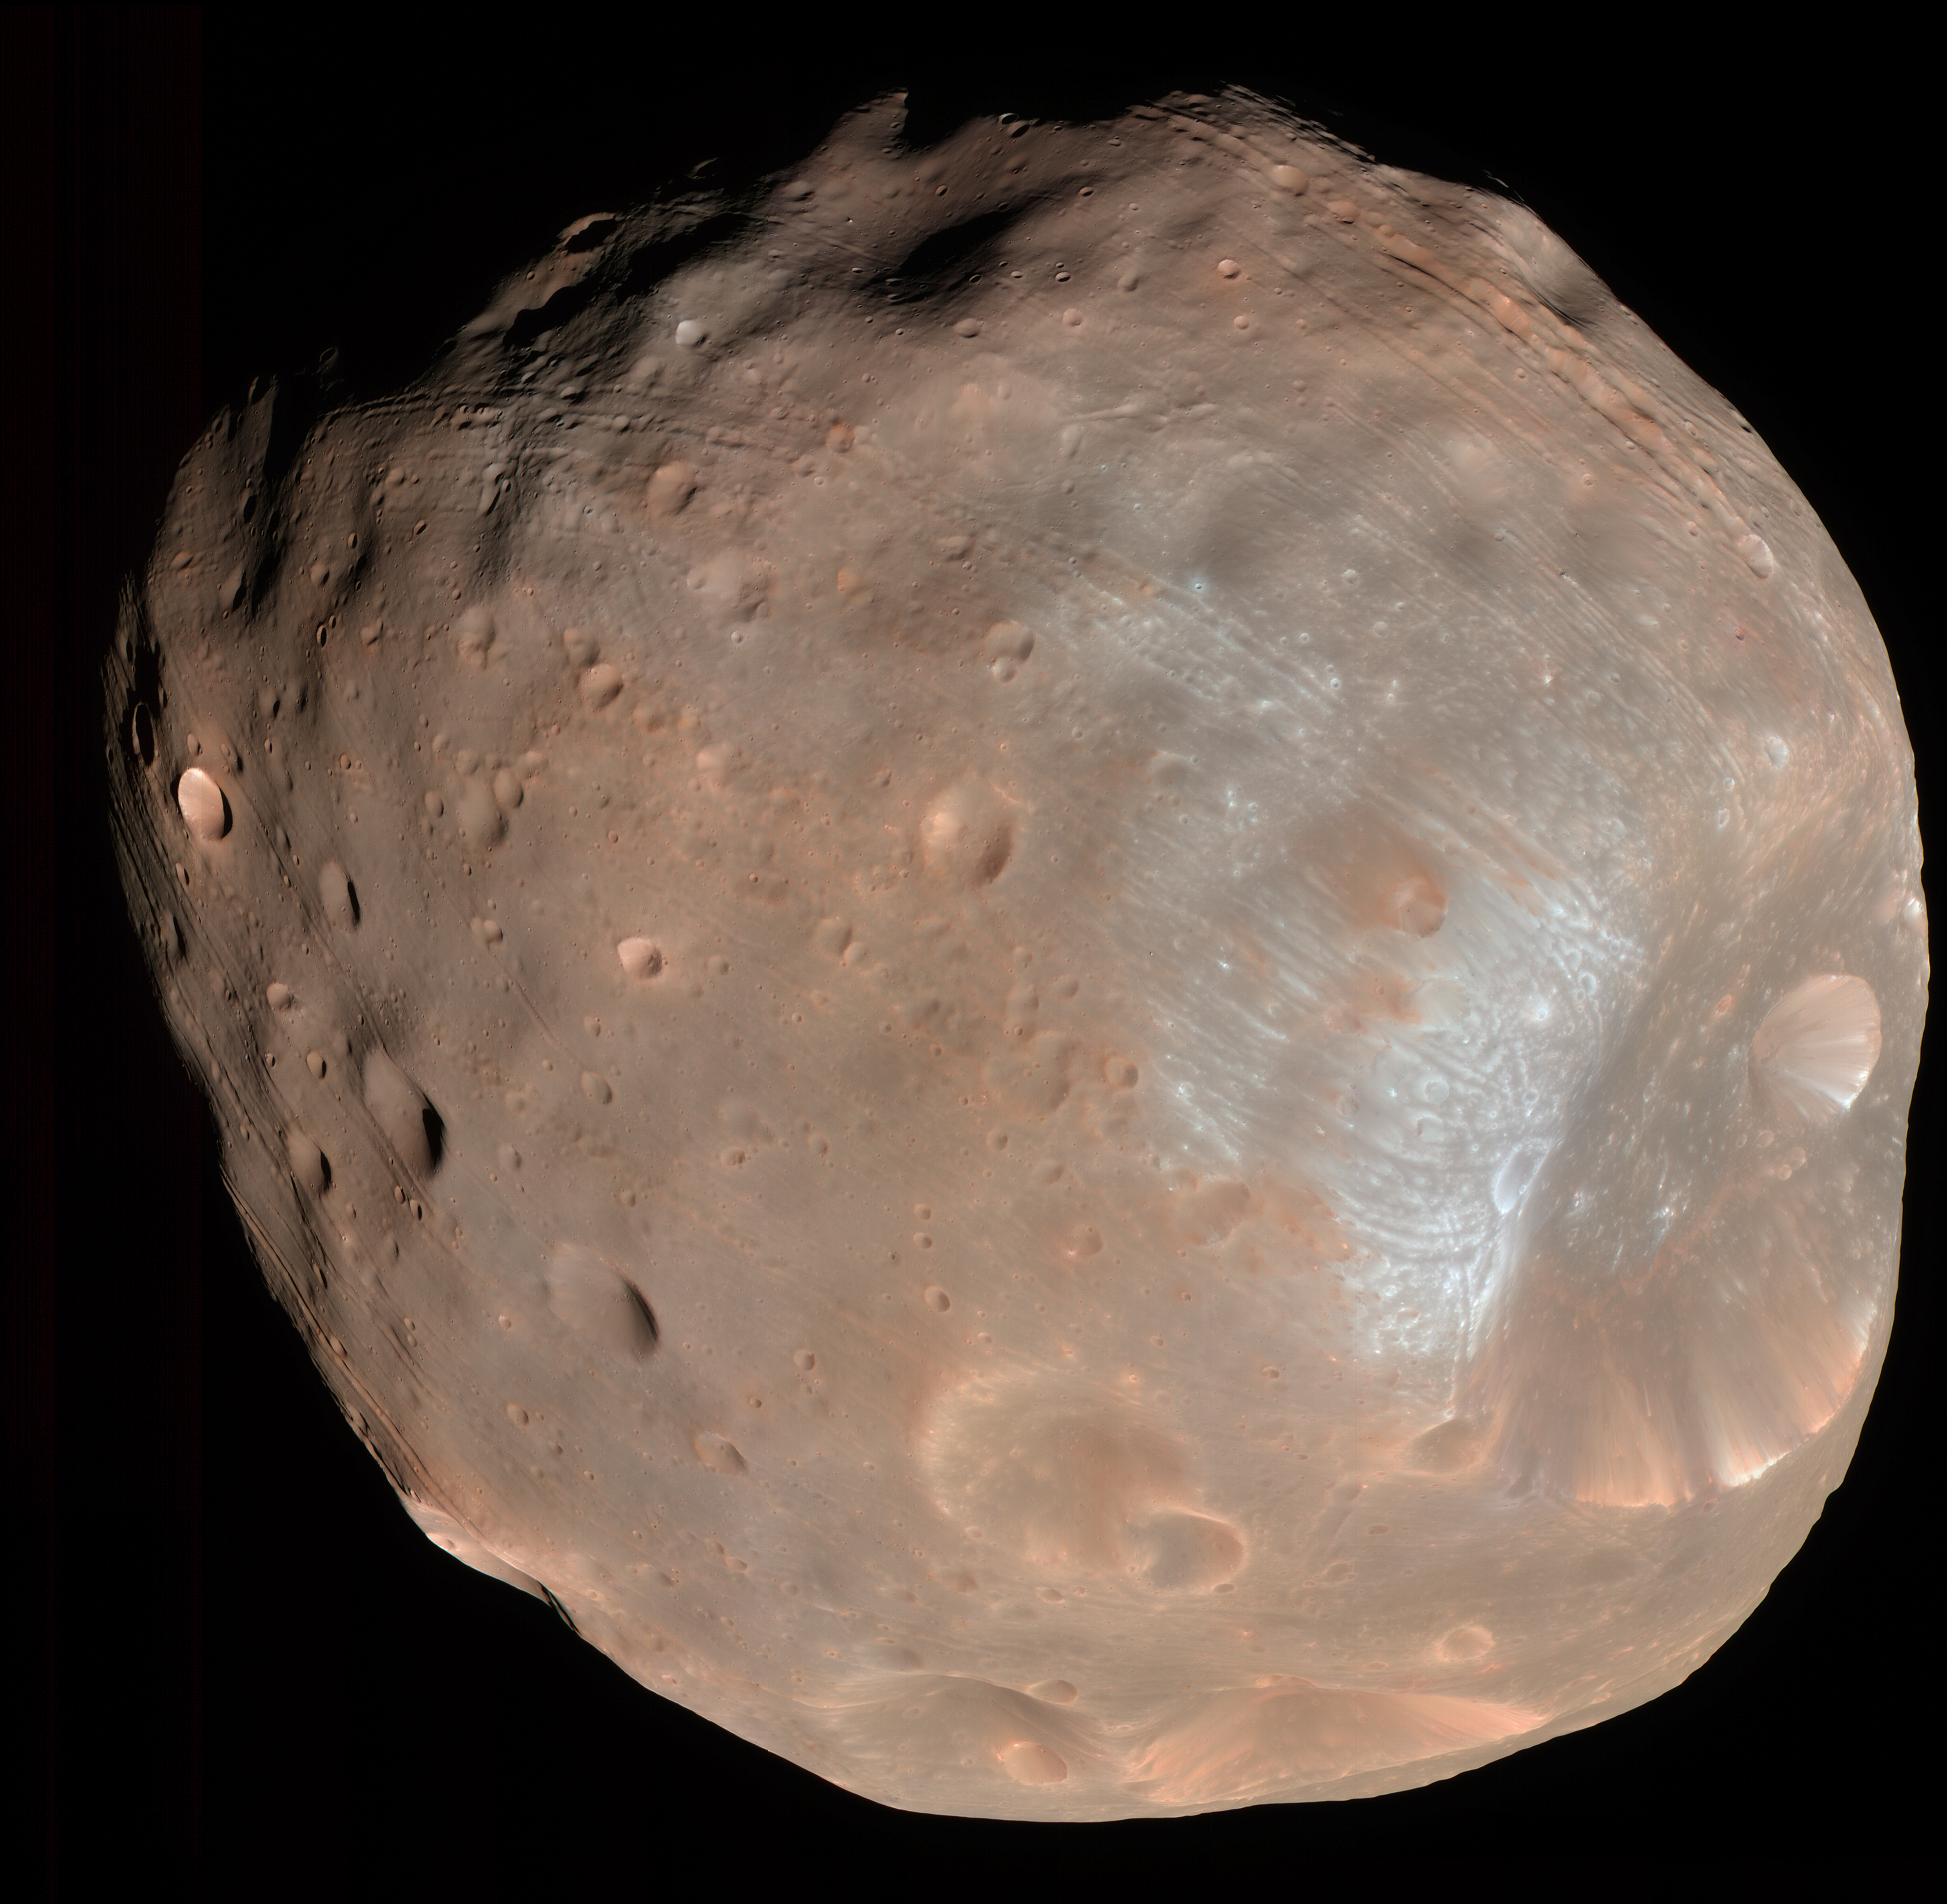 Moons of Mars: Amazing Photos of Phobos and Deimos